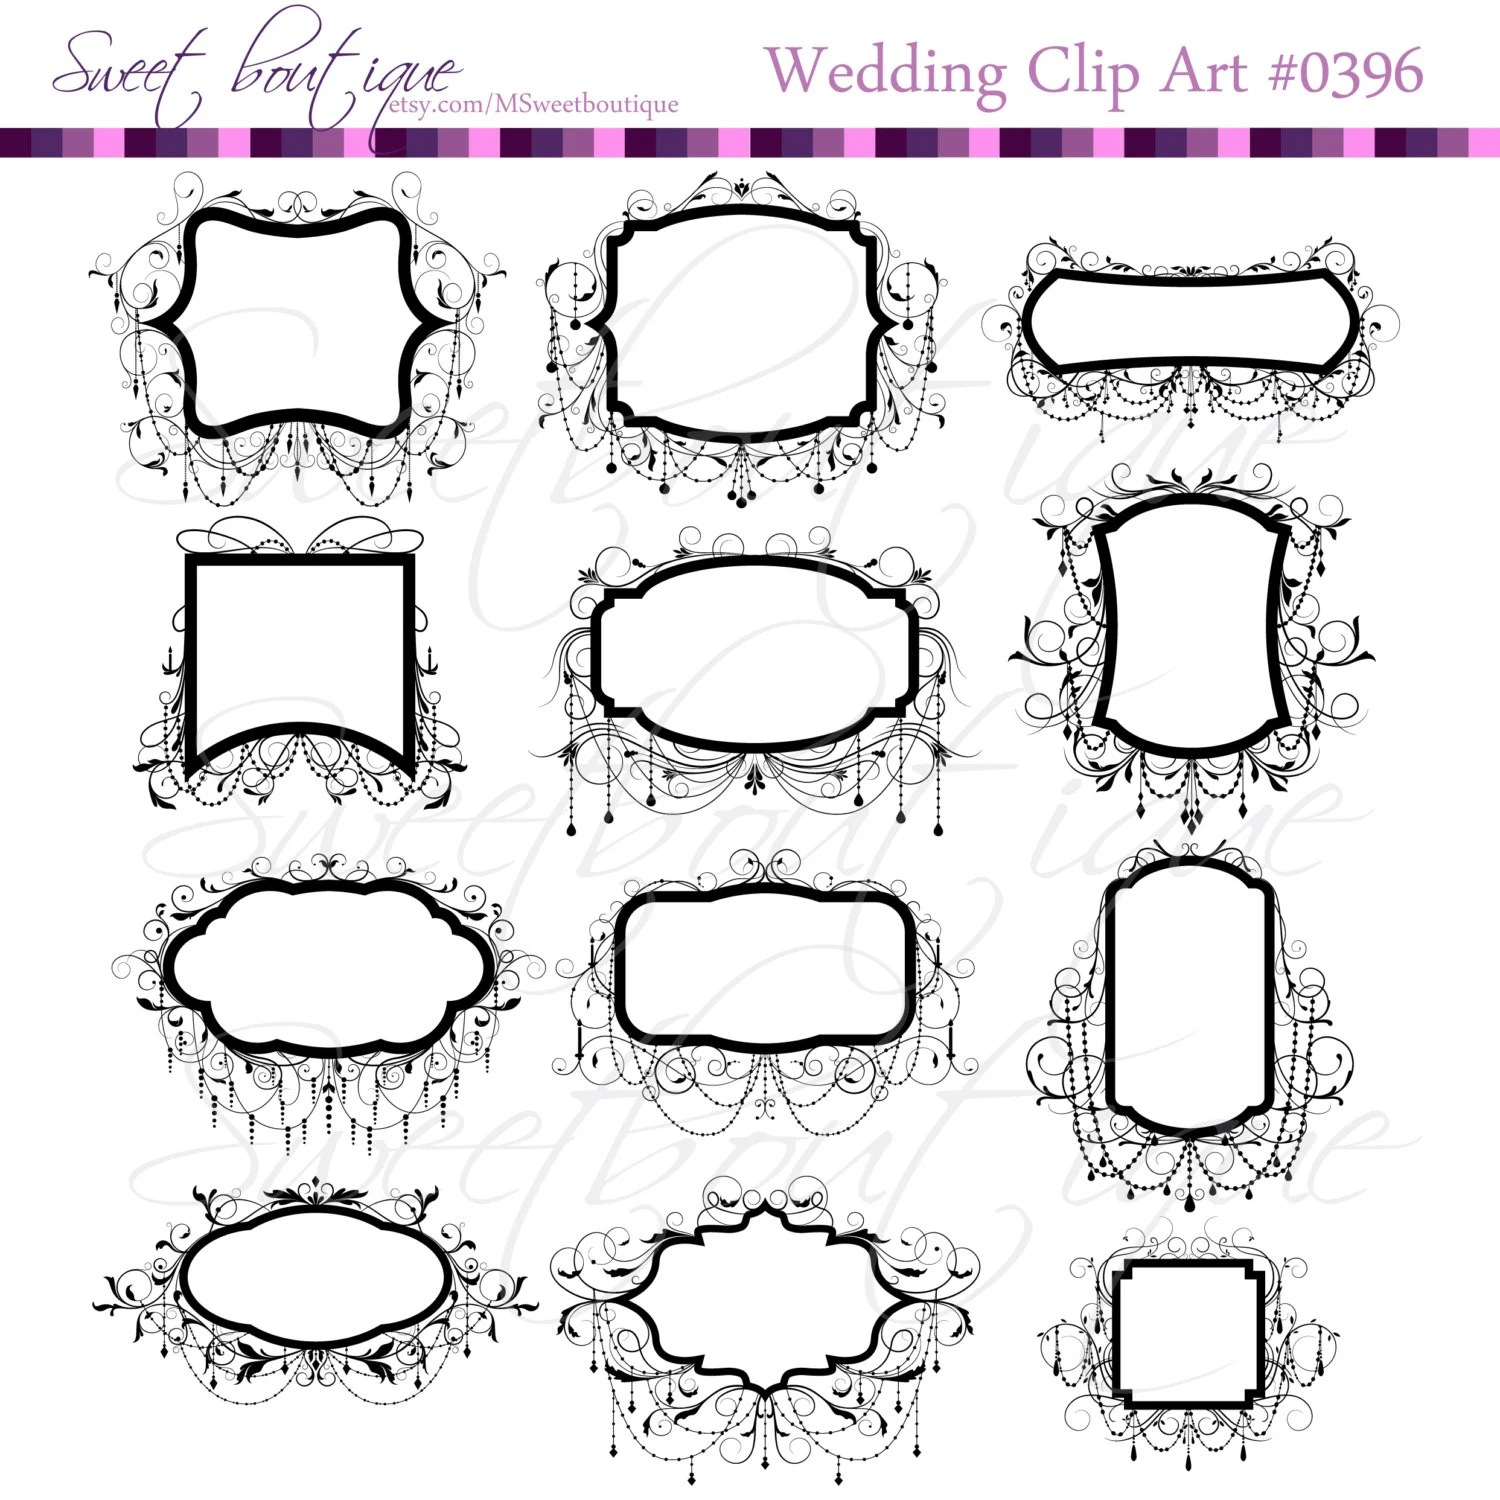 Wedding Clip Art Frames Black Chandelier Ornate Frame